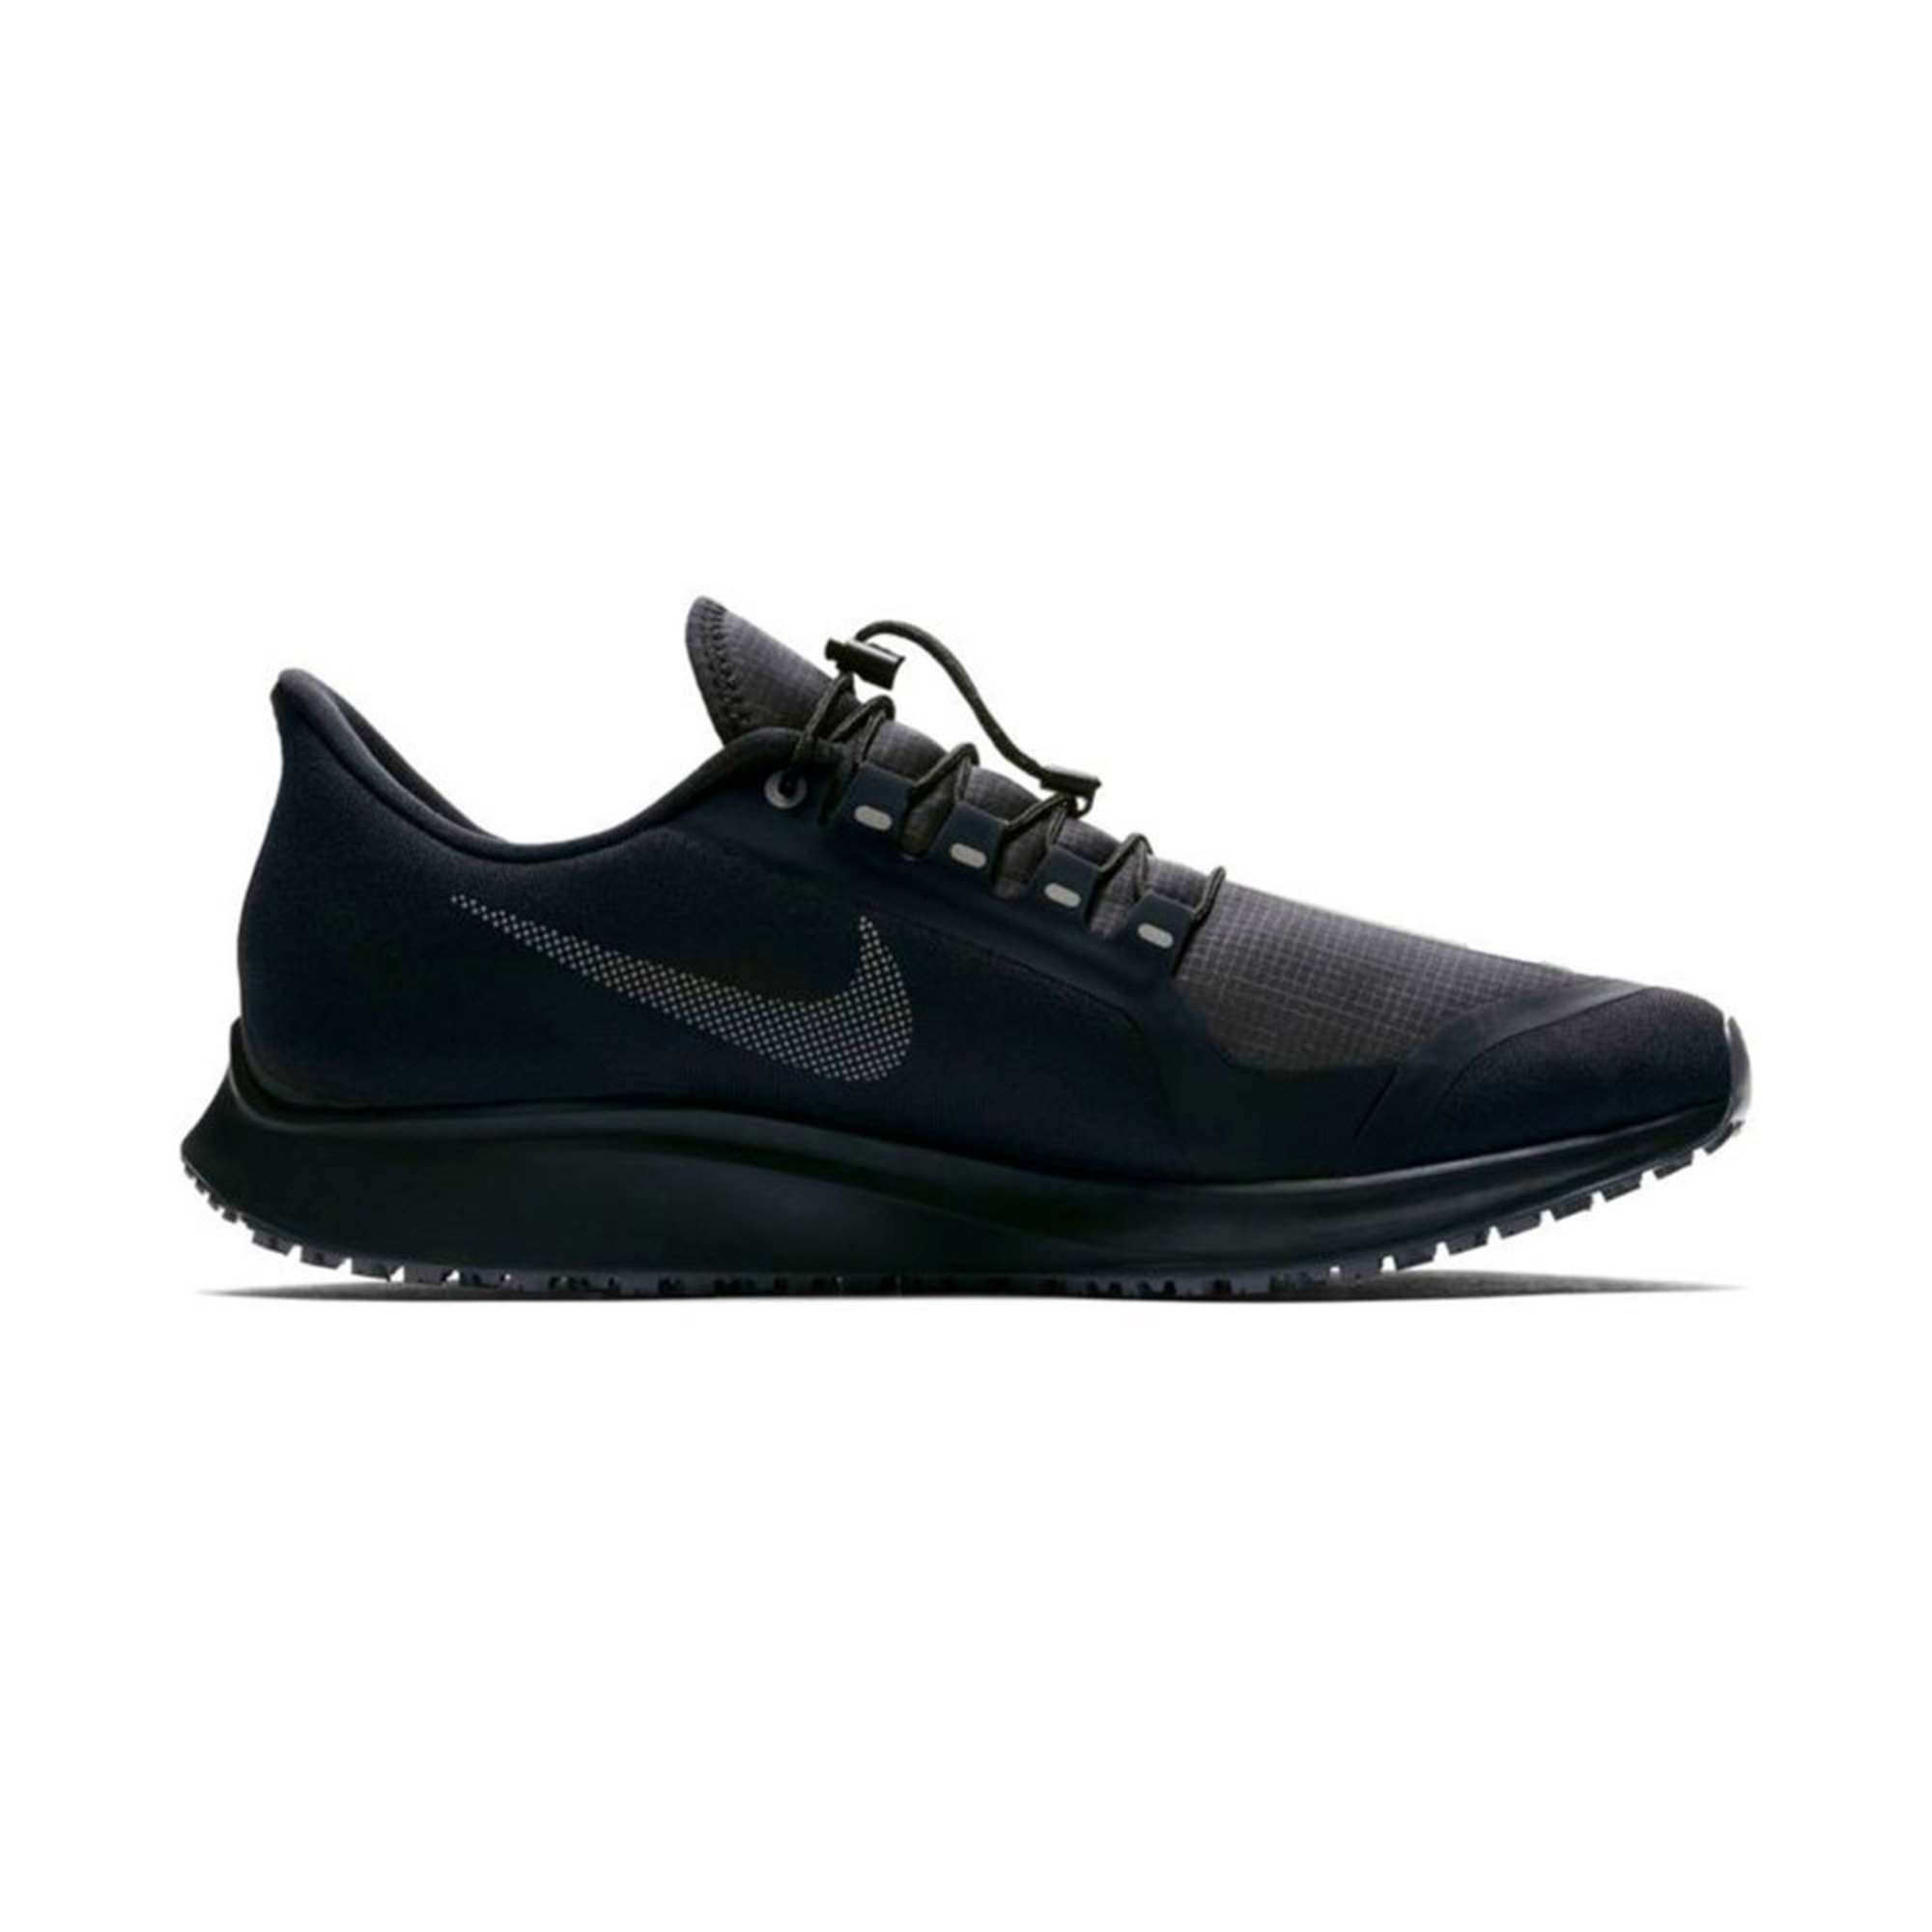 ab8b6fd2a4a Nike. Nike Men s Air Zoom Pegasus 35 Running Shoe. Product Rating